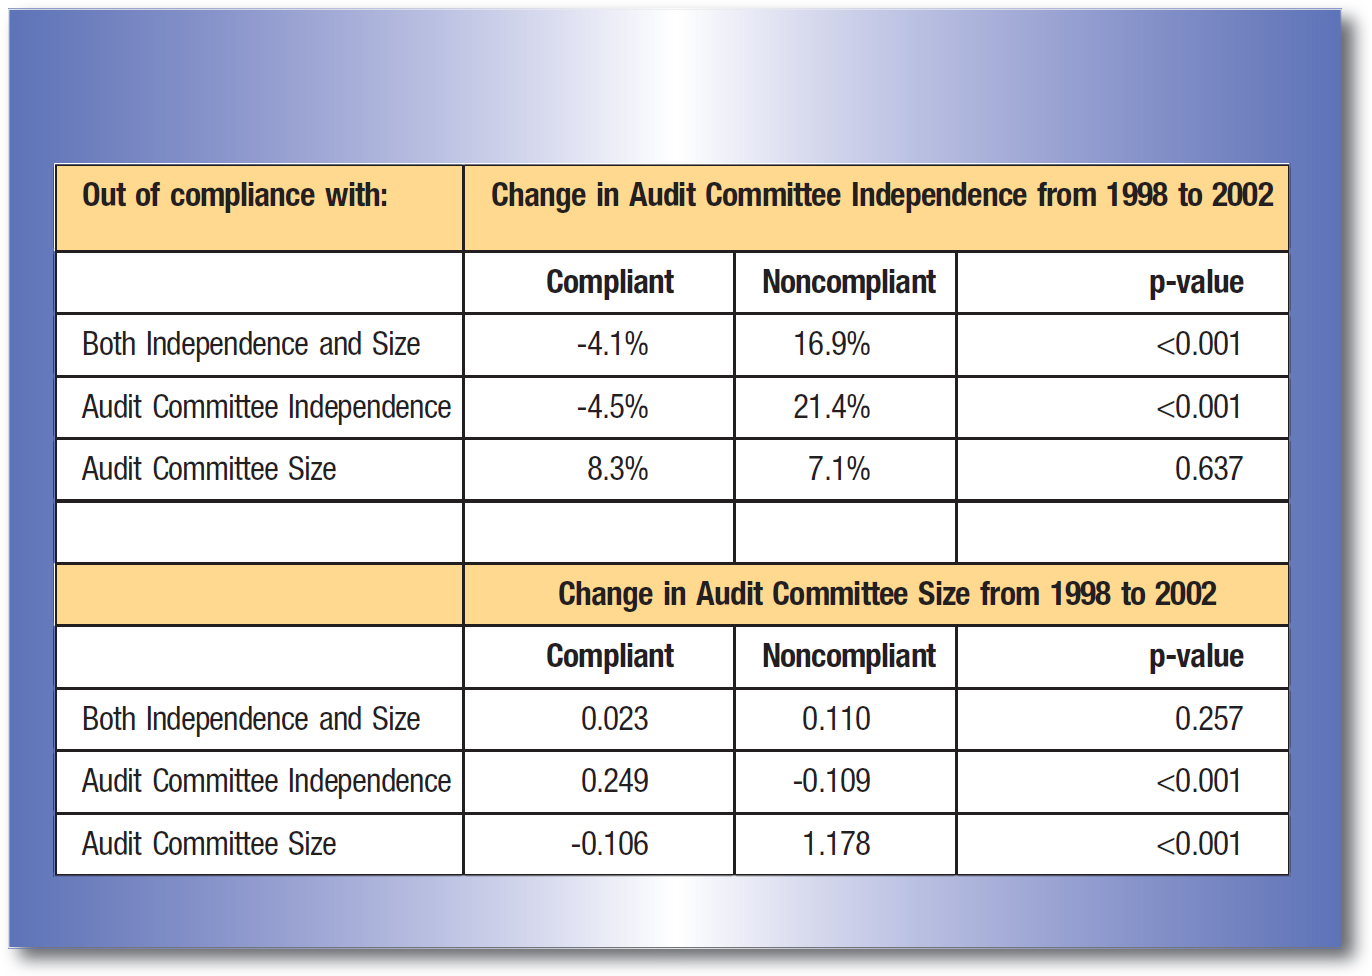 Out of compliance with:; Change in Audit Committee Independence from 1998 to 2002 Compliant; Noncompliant; p-value Both Independence and Size; -4.1%; 16.9%; <0.001 Audit Committee Independence; -4.5%; 21.4%; <0.001 Audit Committee Size; 8.3%; 7.1%; 0.637 Change in Audit Committee Size from 1998 to 2002 Compliant; Noncompliant; p-value Both Independence and Size; 0.023; 0.110; 0.257 Audit Committee Independence; 0.249; -0.109; <0.001 Audit Committee Size; -0.106; 1.178;<0.001